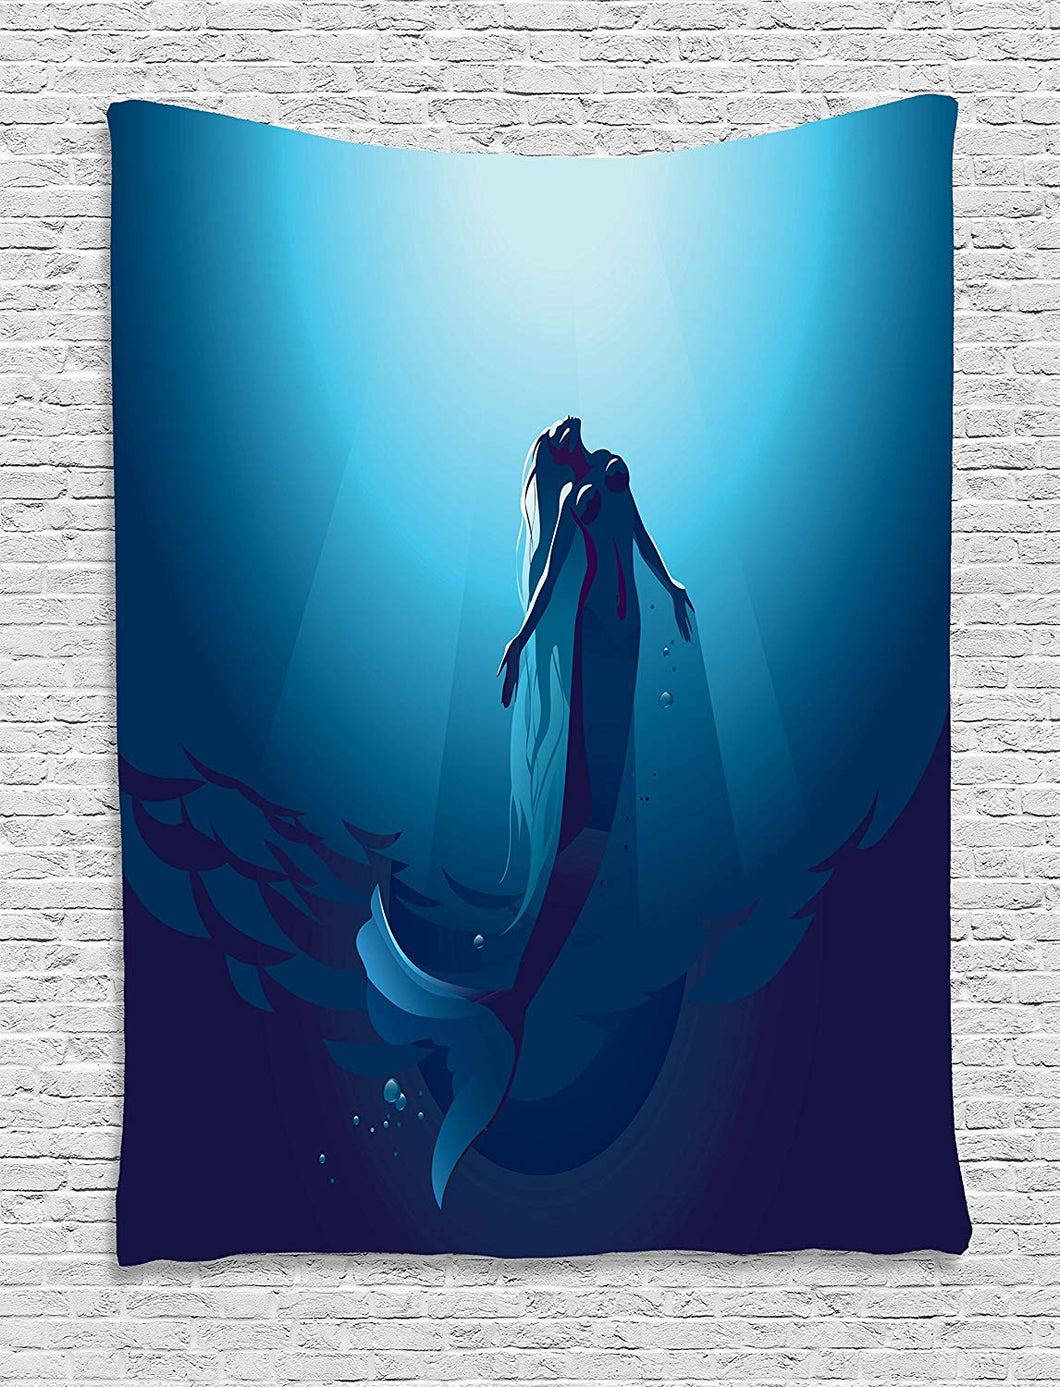 Ambesonne Mermaid Decor Tapestry Wall Hanging By, Mermaid In Deep Water Swimming Up To The Surface Sunlight Rays, Bedroom Living Room Dorm Decor, 60 W x 80 L Inches, Blue